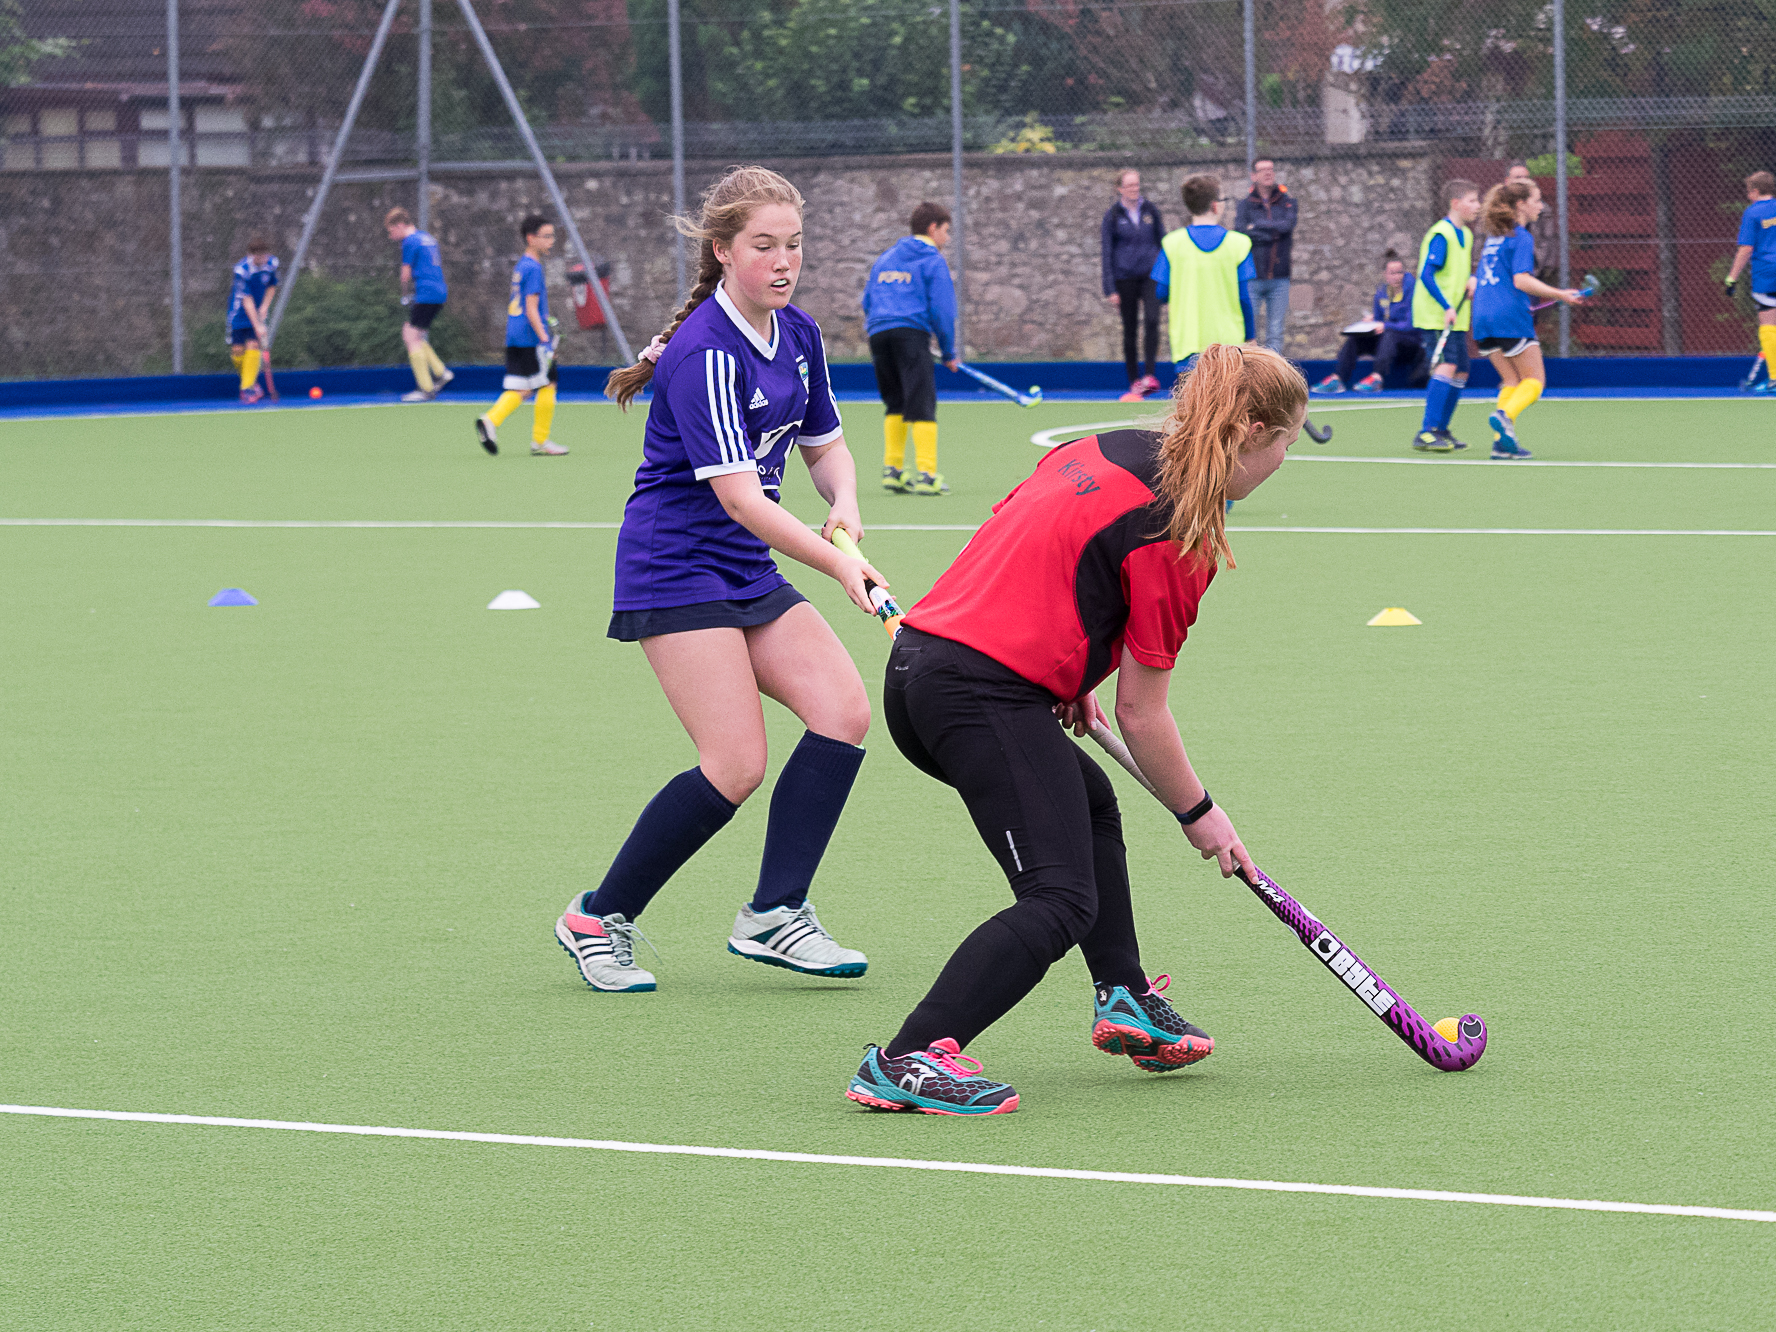 Hockey Kinross Sept 24th-50.jpg